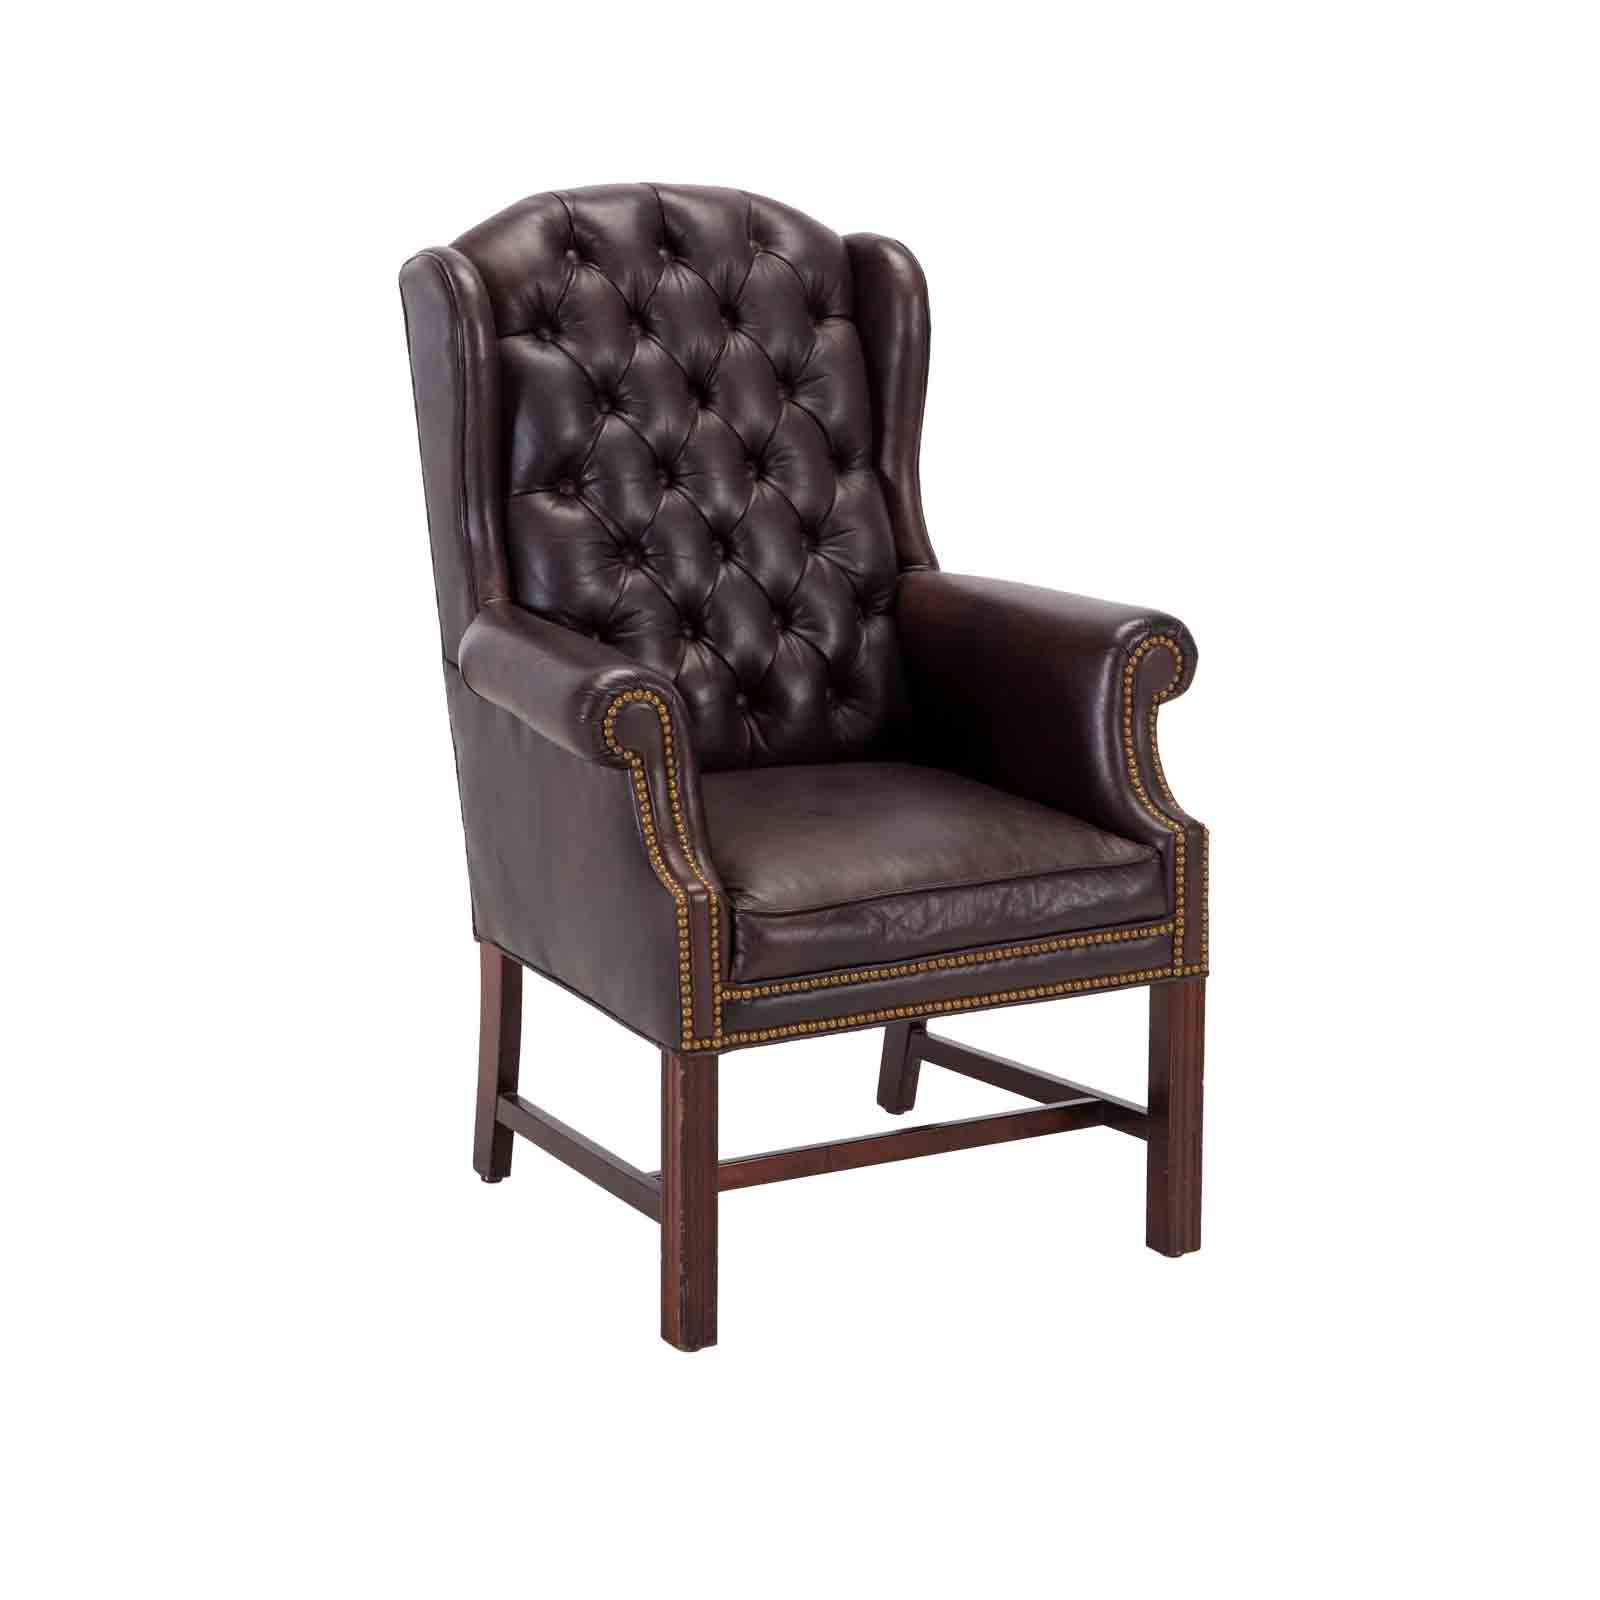 Wingback Tufted Lounge Chair Brown Event Trade Show